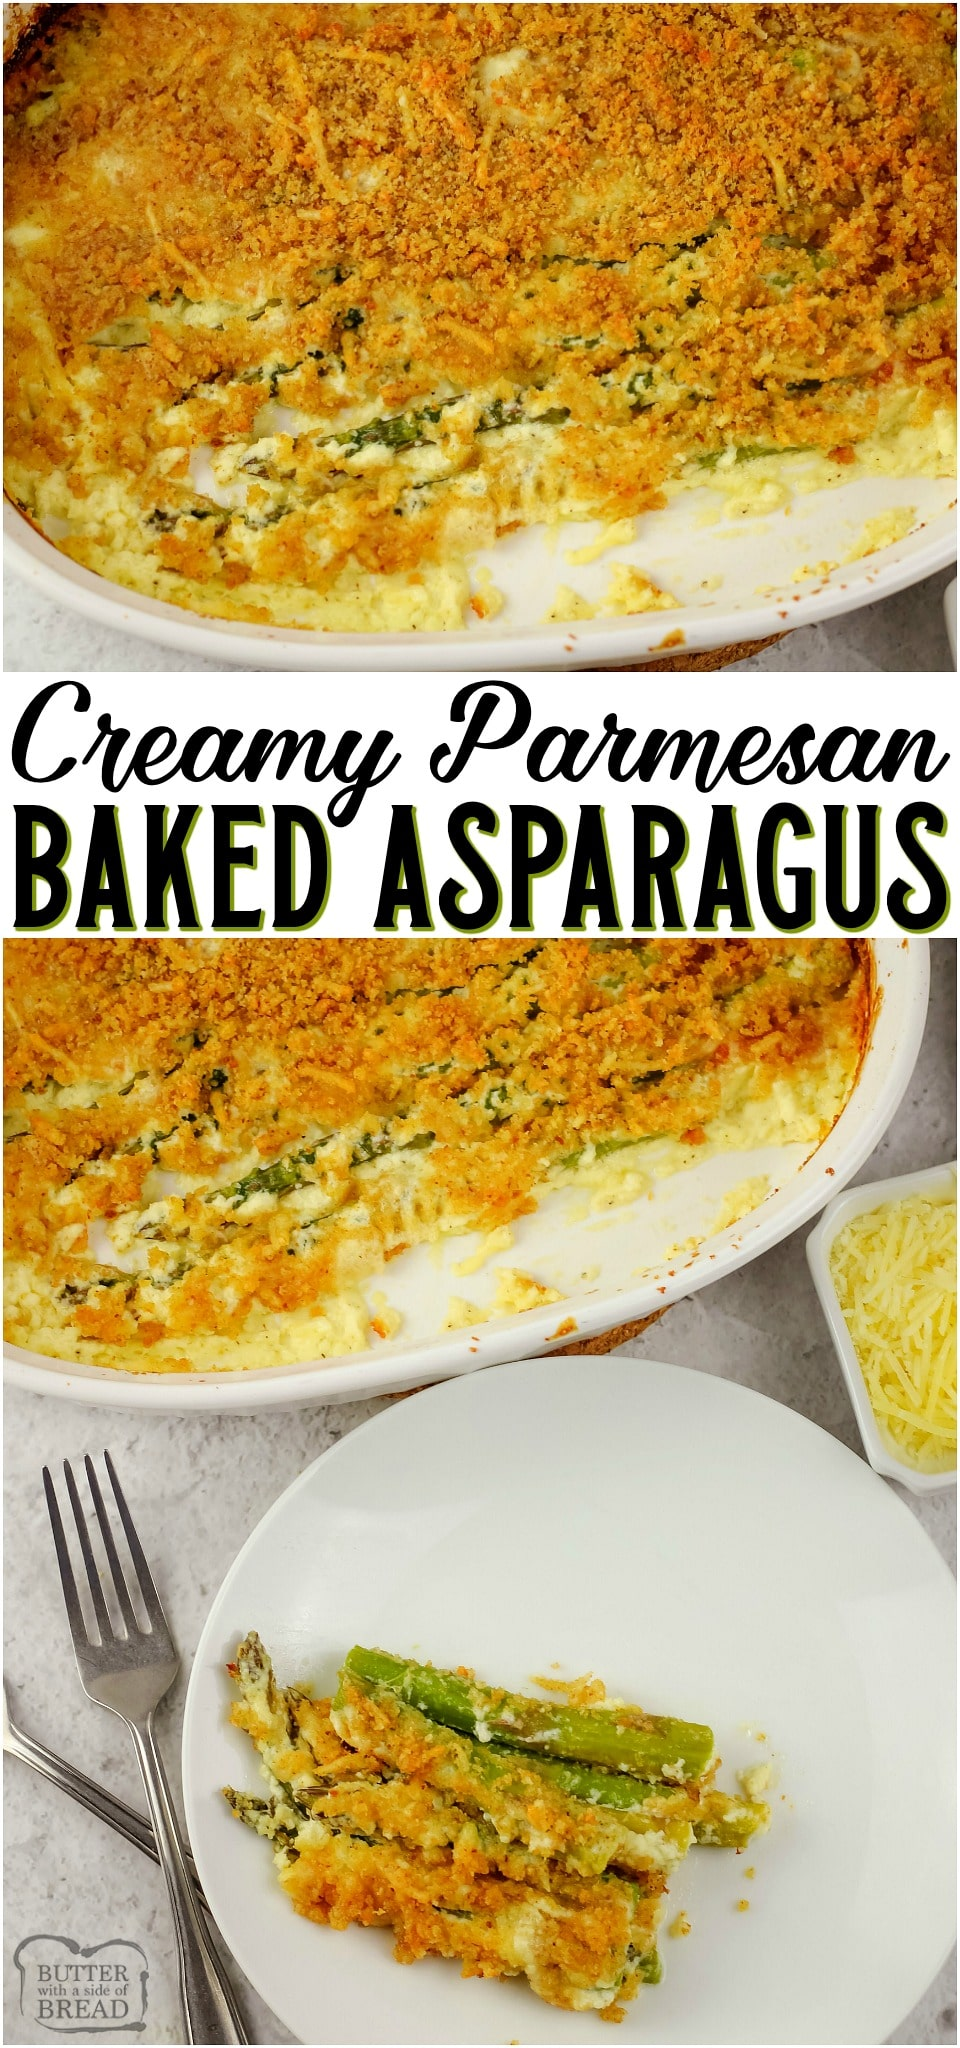 Creamy Baked Asparagus is a cheesy side dish made with fresh asparagus & parmesan cream sauce. Easy baked asparagus topped with bread crumbs and butter for a toasty crunch.